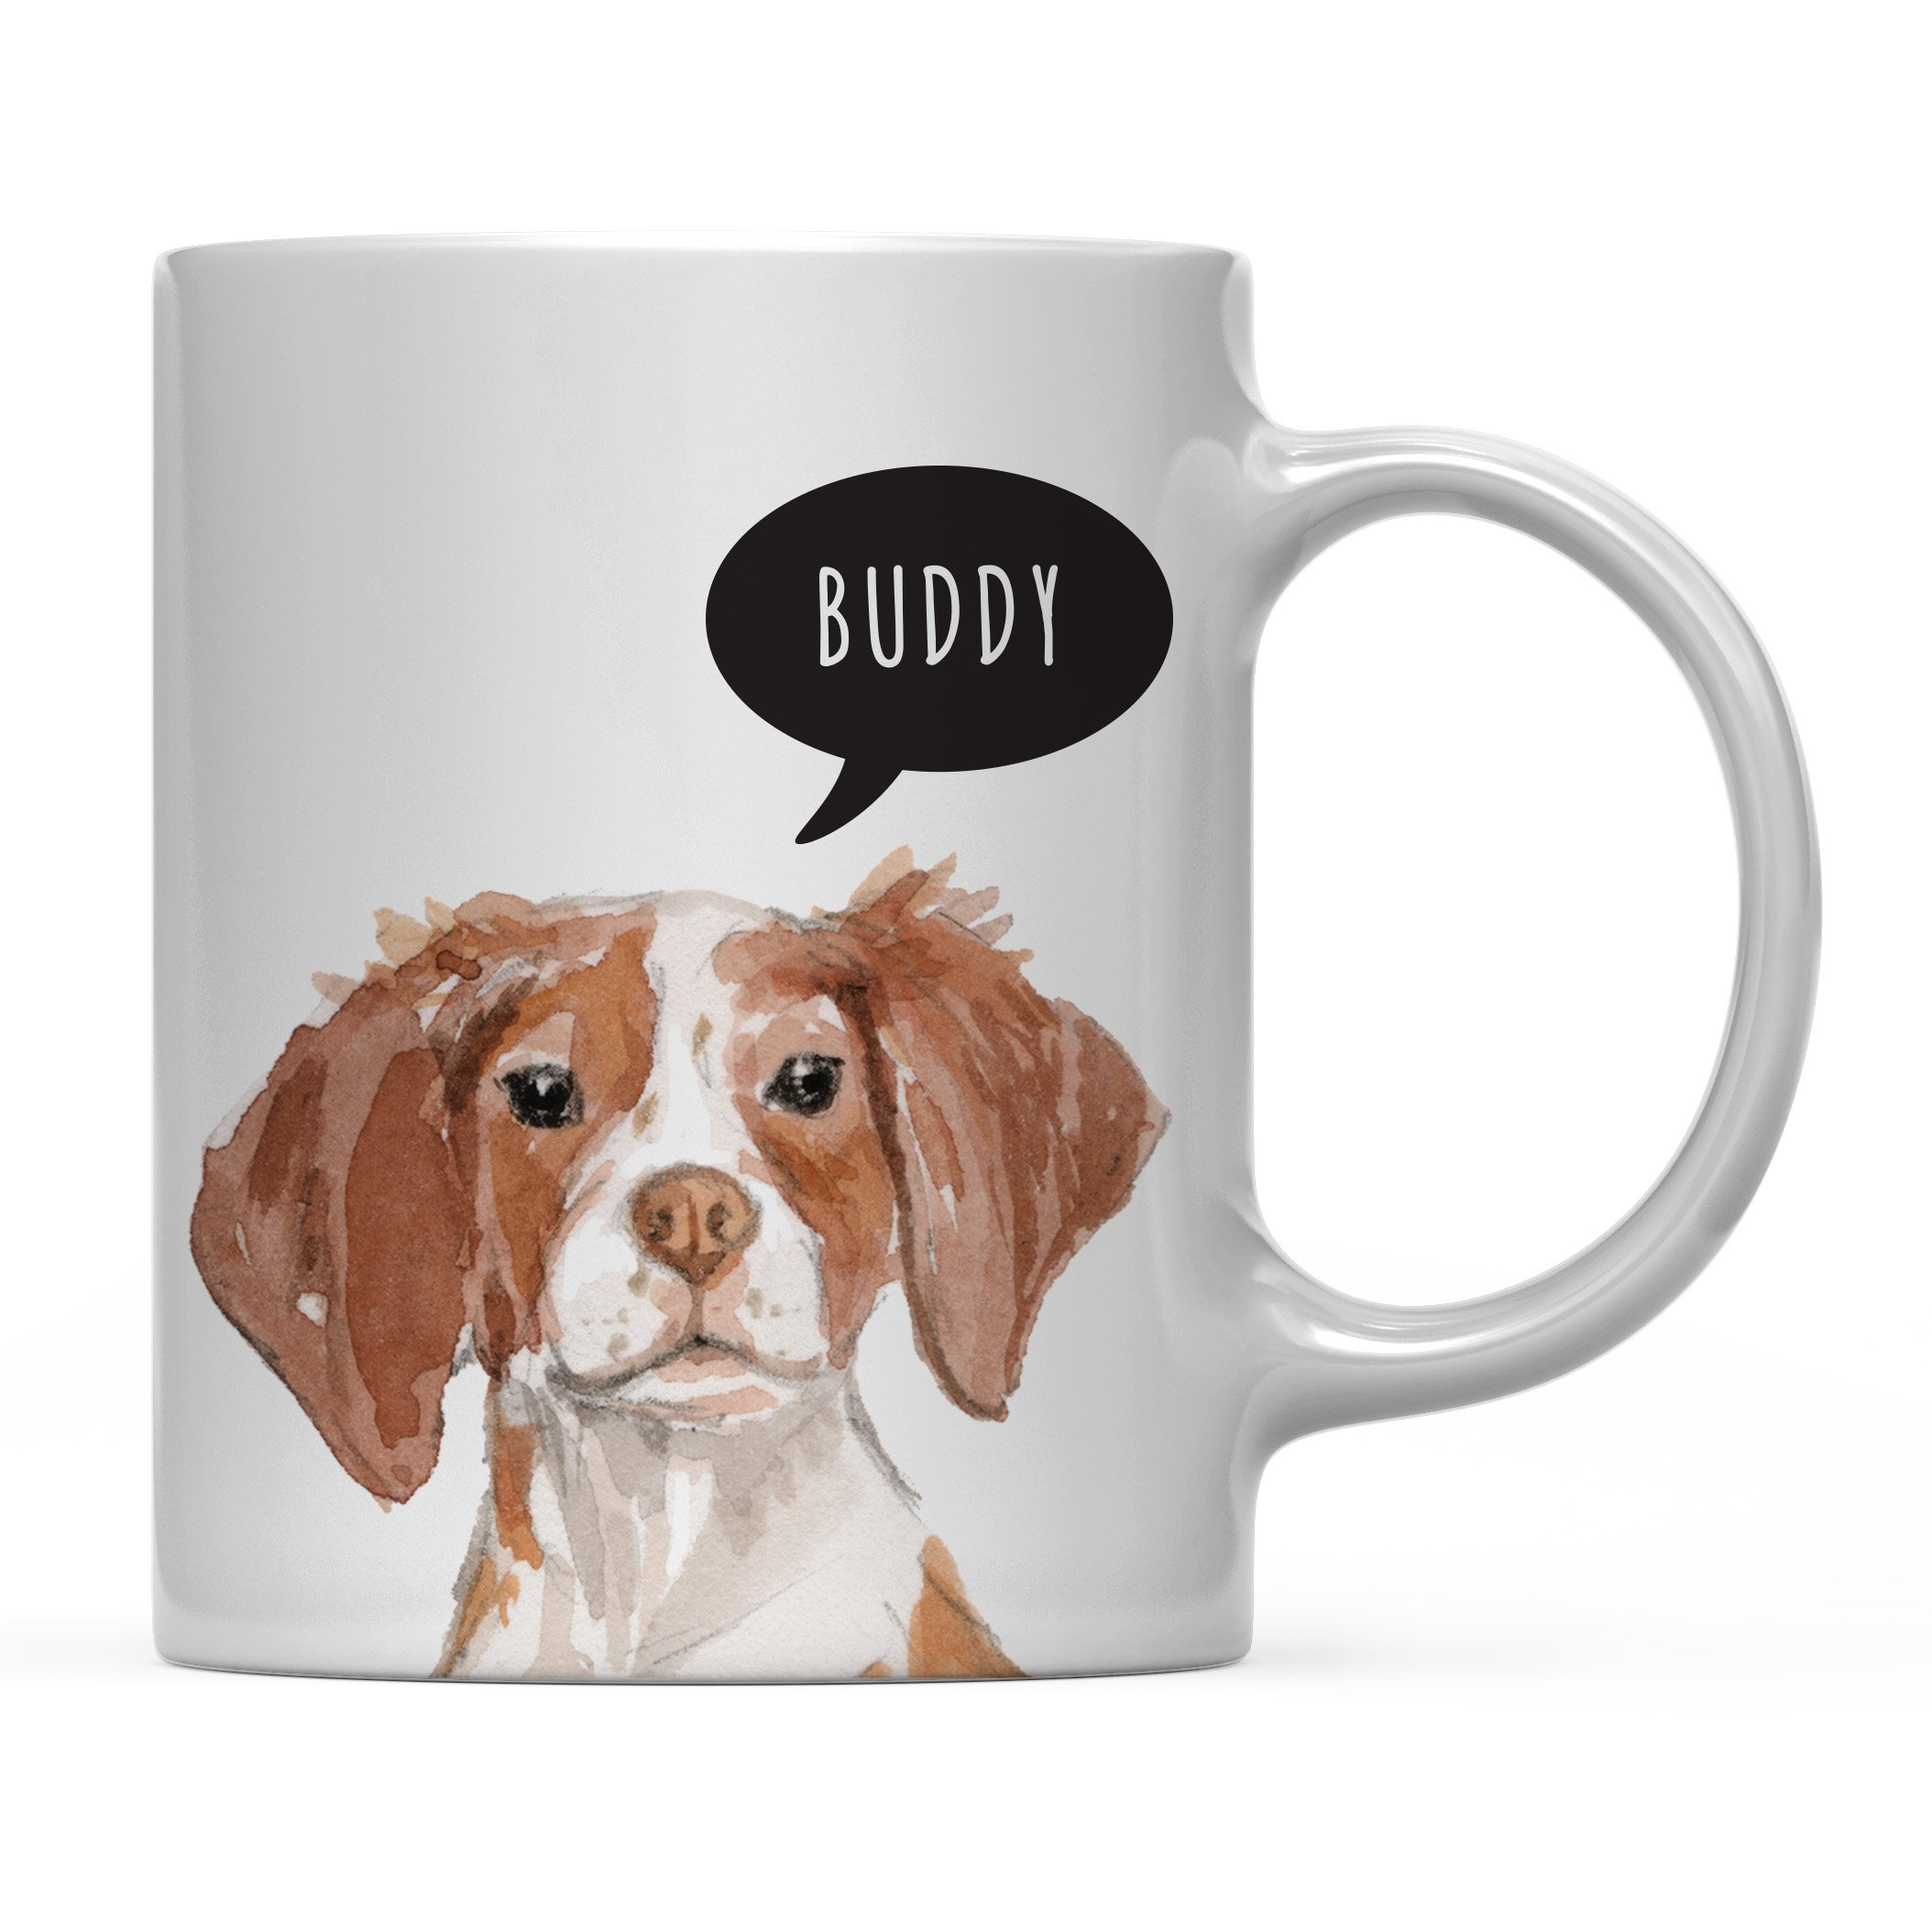 Andaz Press Personalized 11oz. Dog Coffee Mug Gift, Brittany Up Close, 1-Pack, Custom Name, Pet Animal Lover Birthday Christmas Gift for Her Family